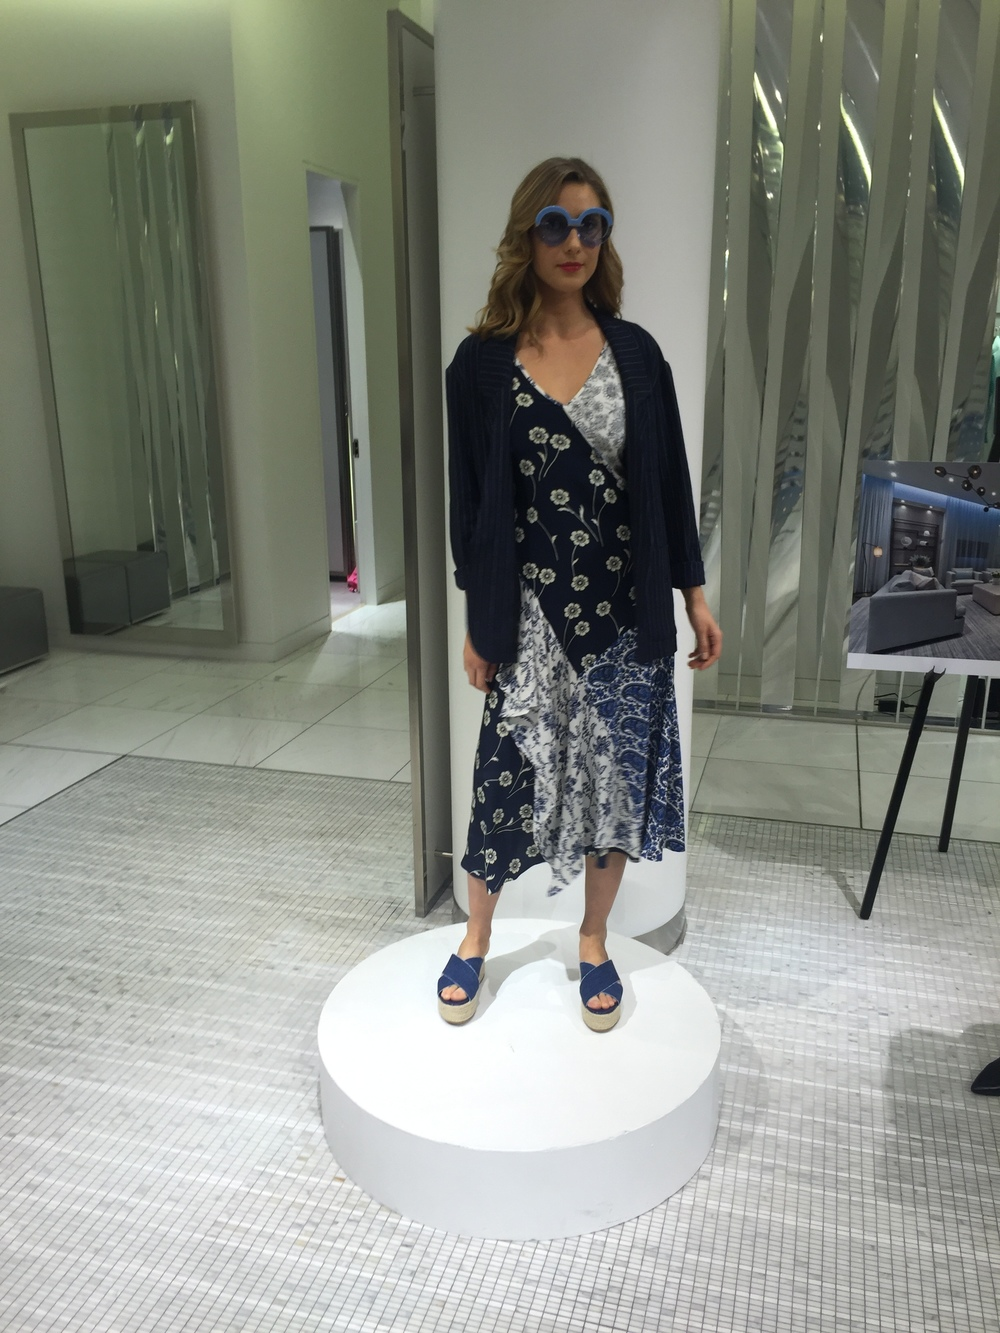 dress, DEREK LAM. jacket, SMYTHE. shoes, PRADA. sunnies, KAREN WALKER